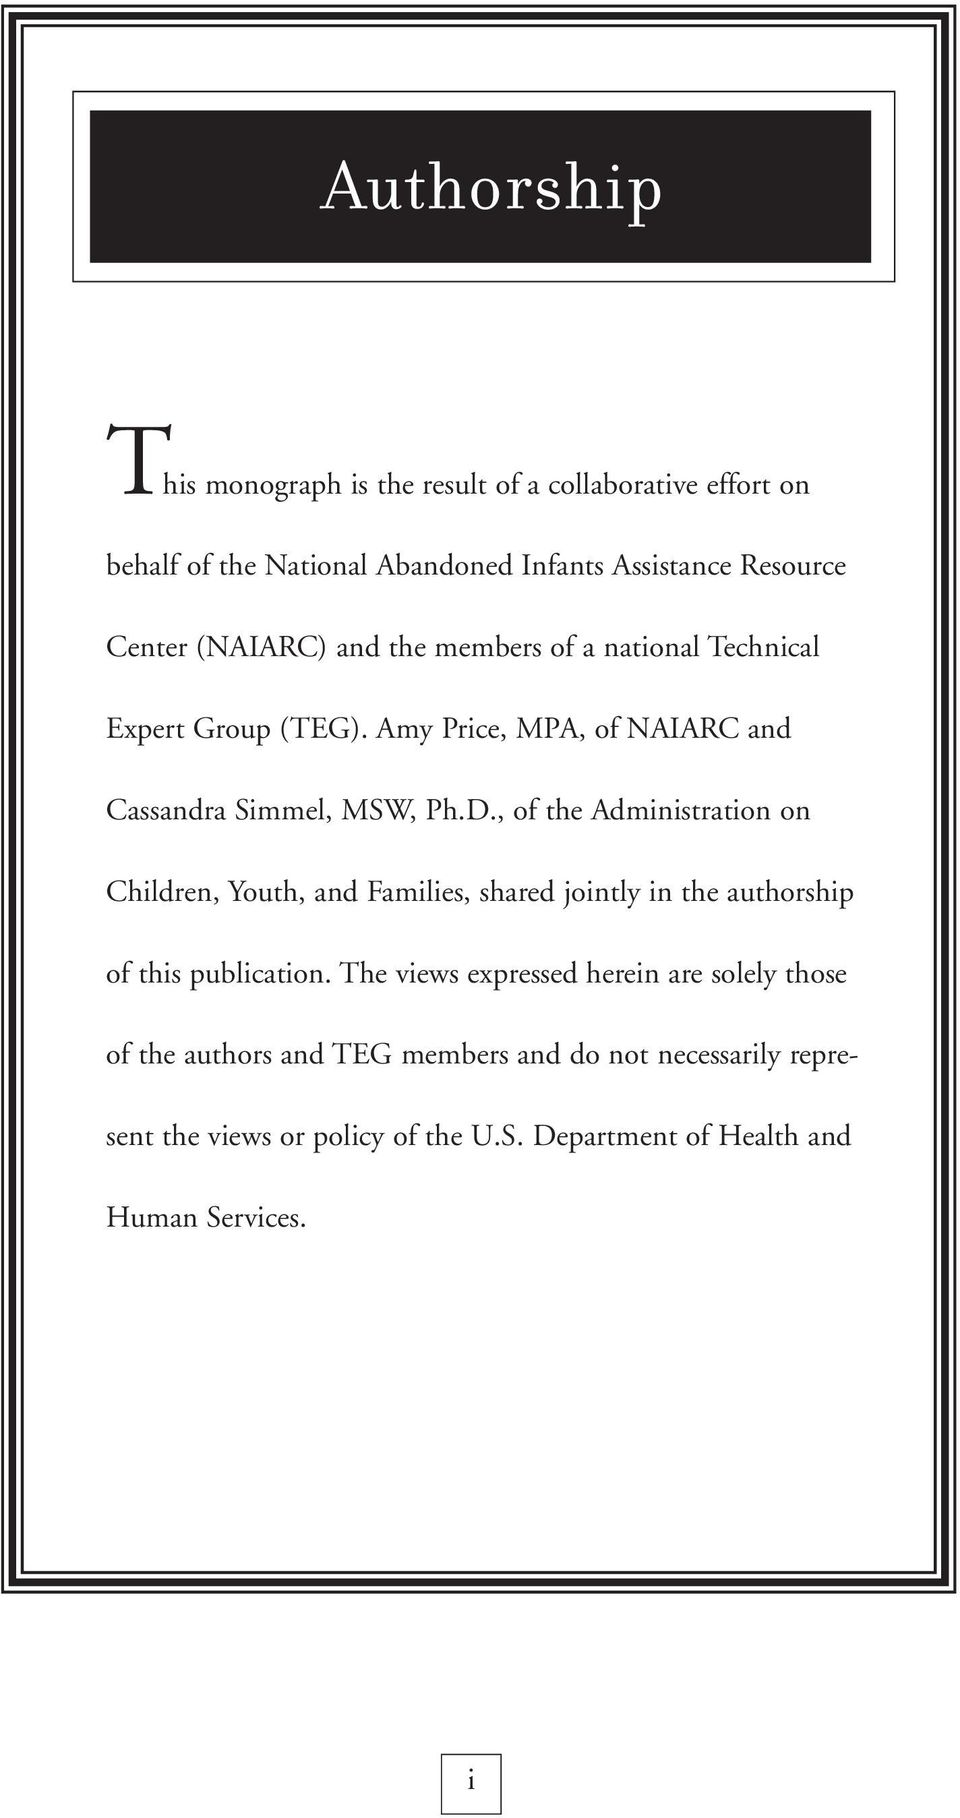 , of the Administration on Children, Youth, and Families, shared jointly in the authorship of this publication.